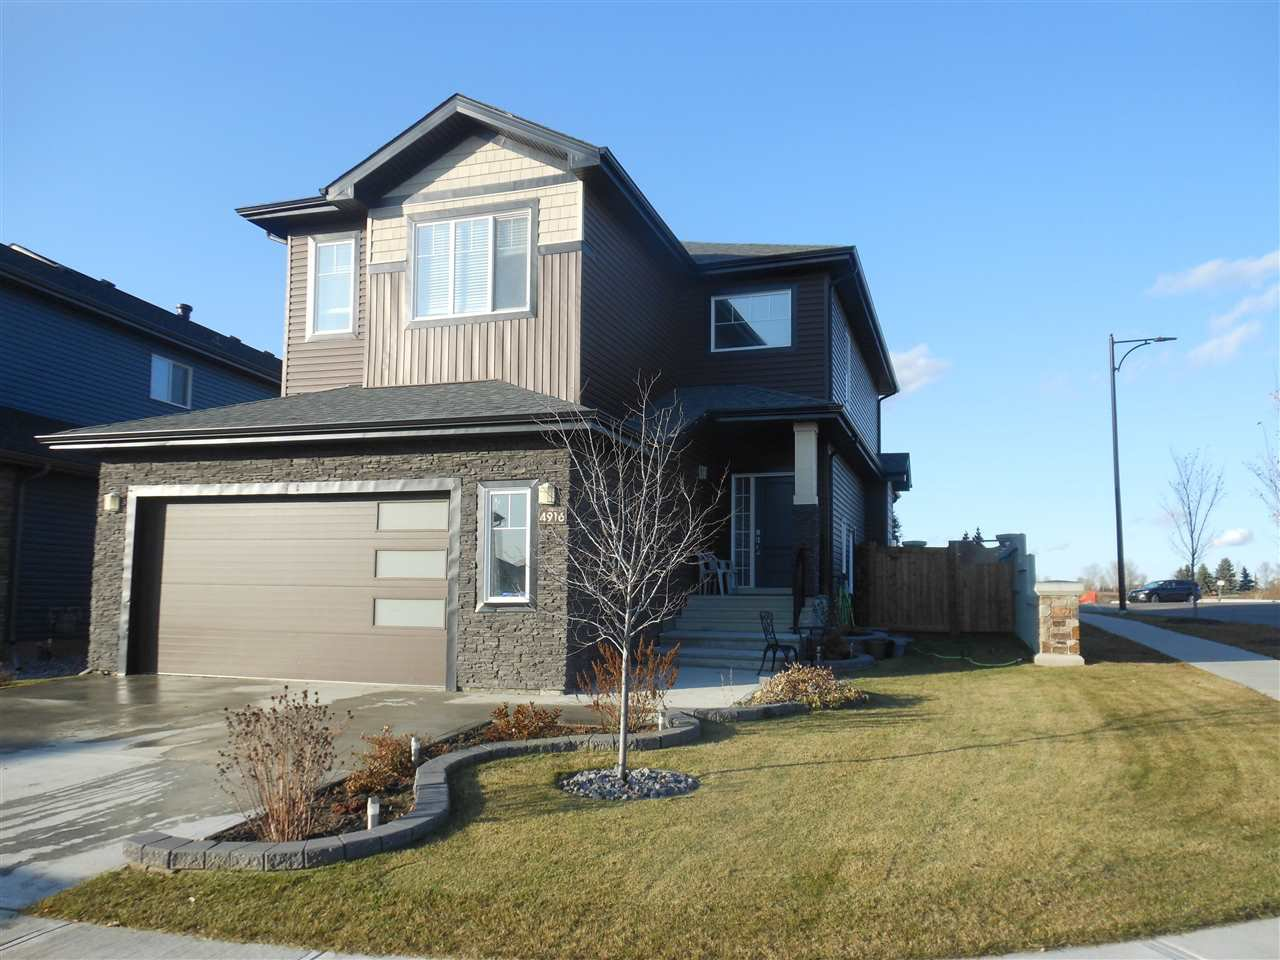 Main Photo: 4916 38 Street: Beaumont House for sale : MLS®# E4178526